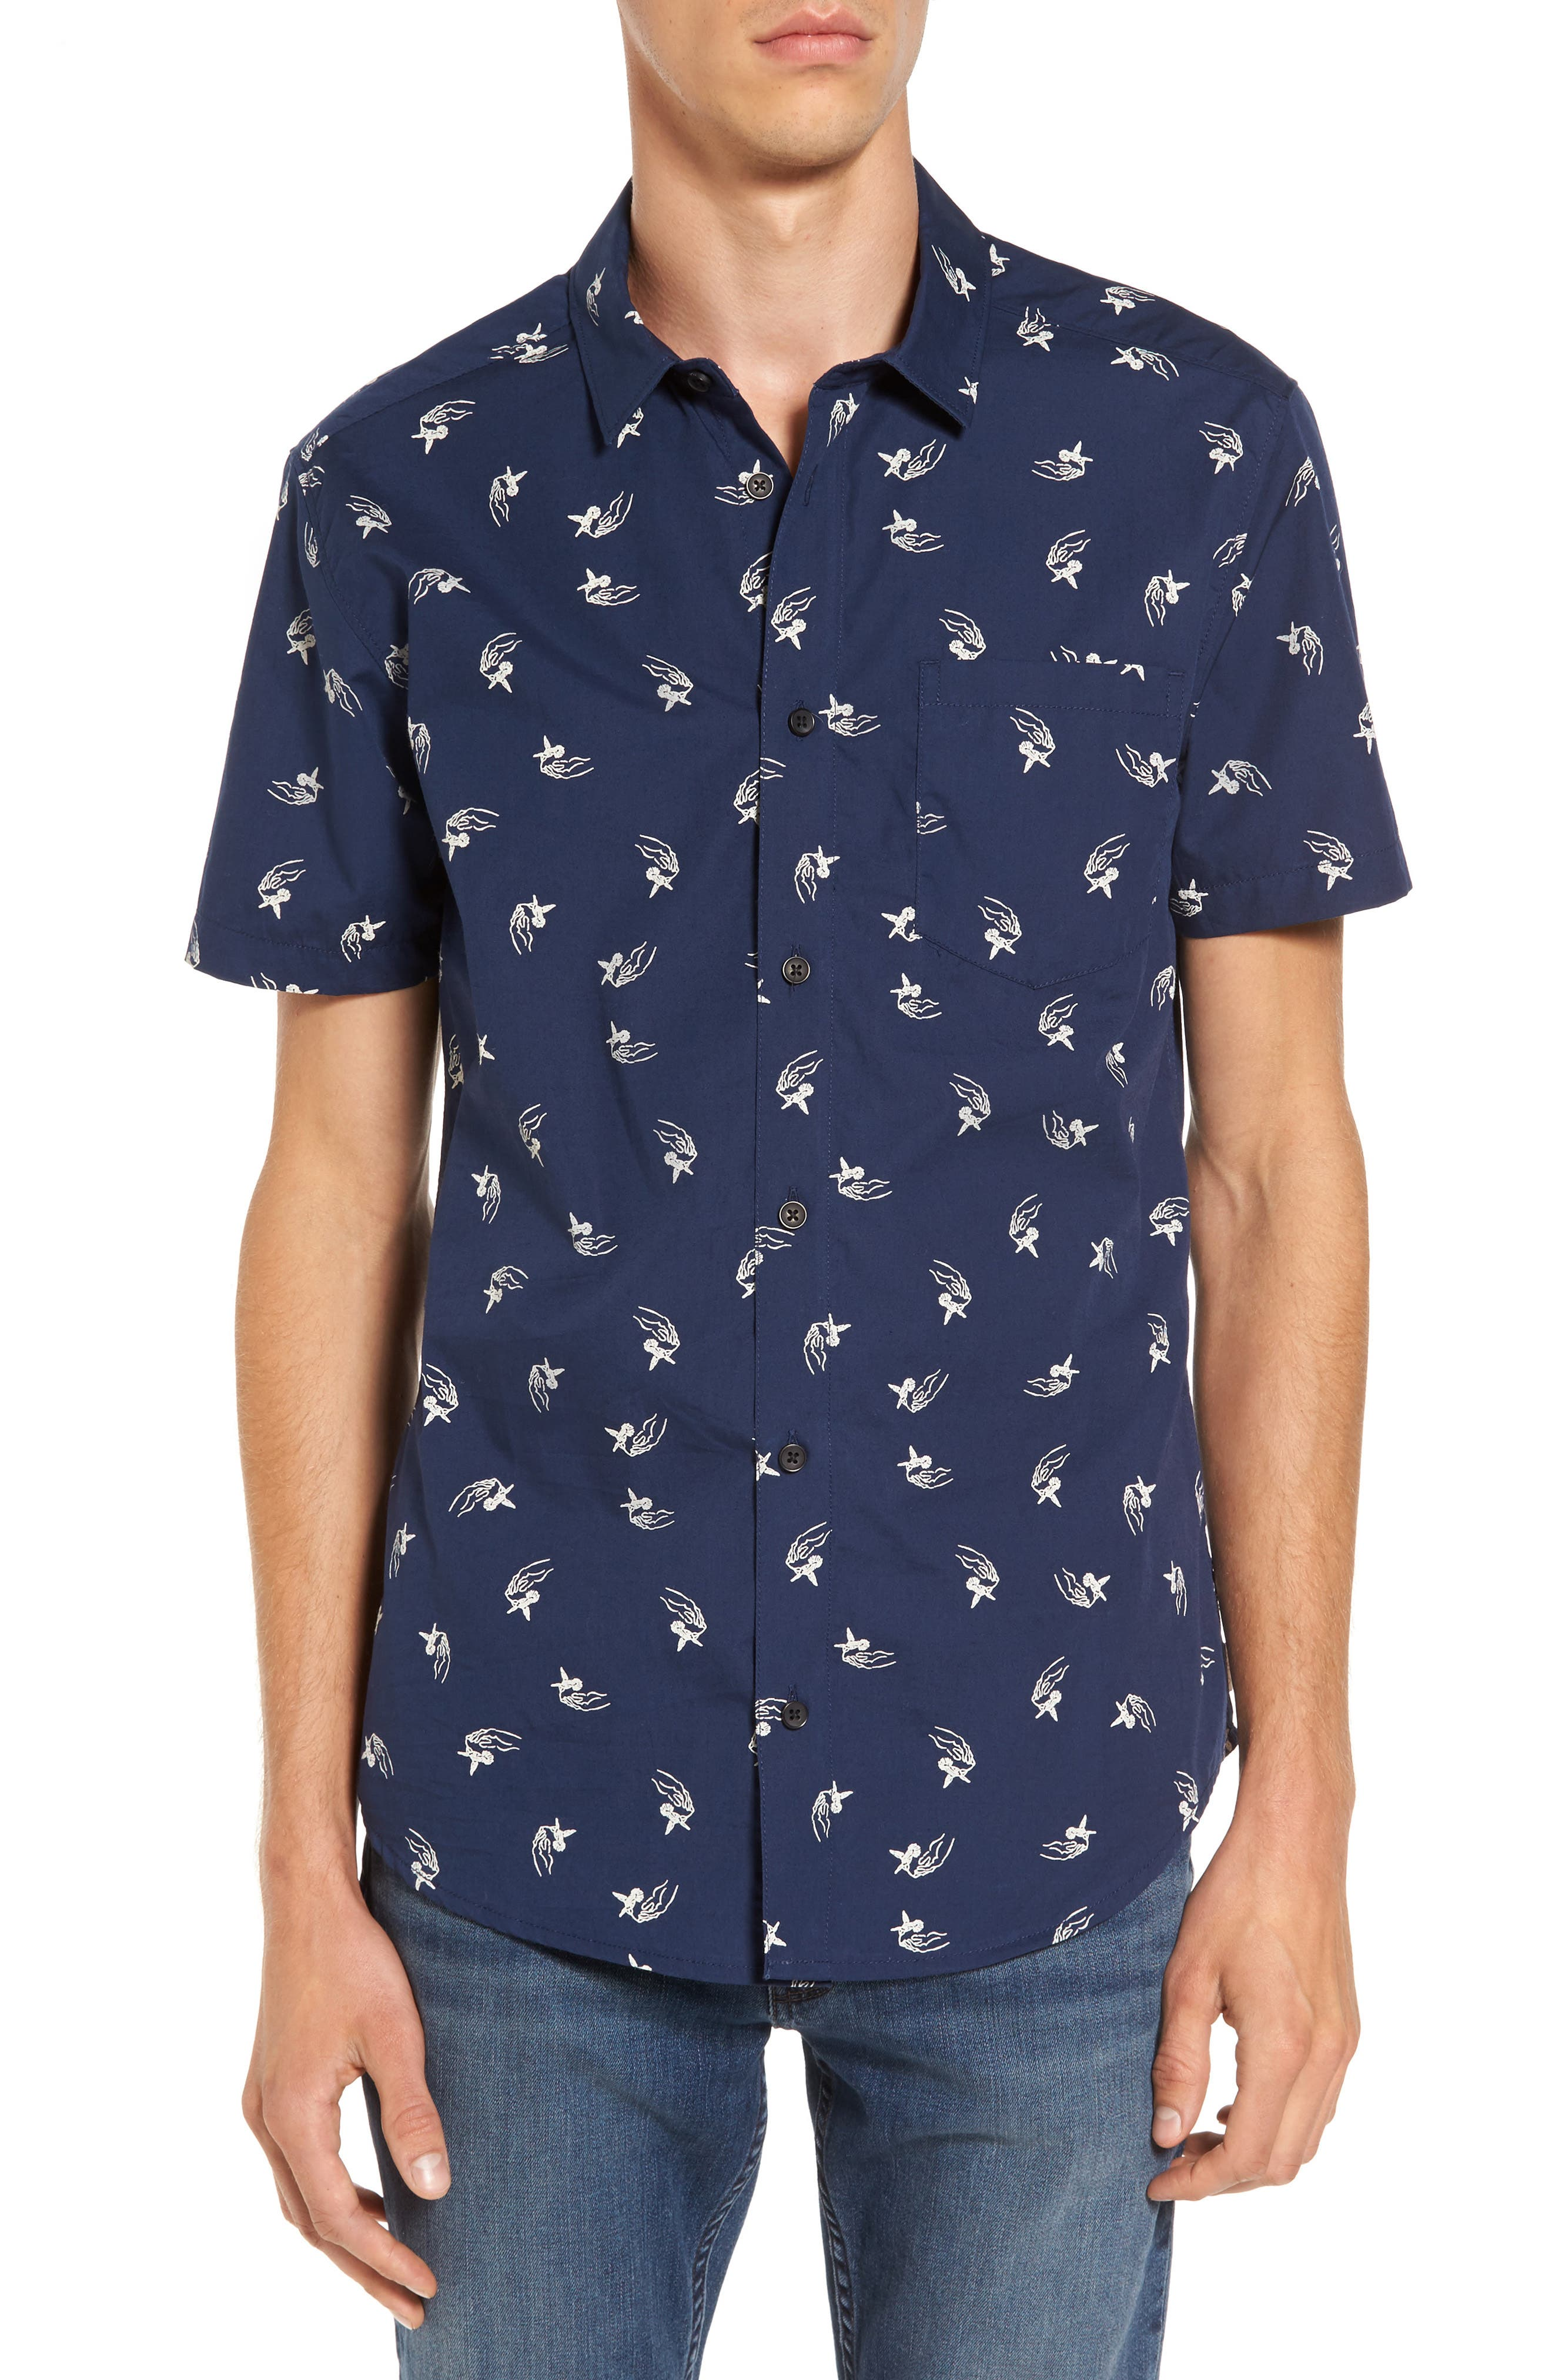 Main Image - RVCA x Kevin Long Hummingbird Woven Shirt